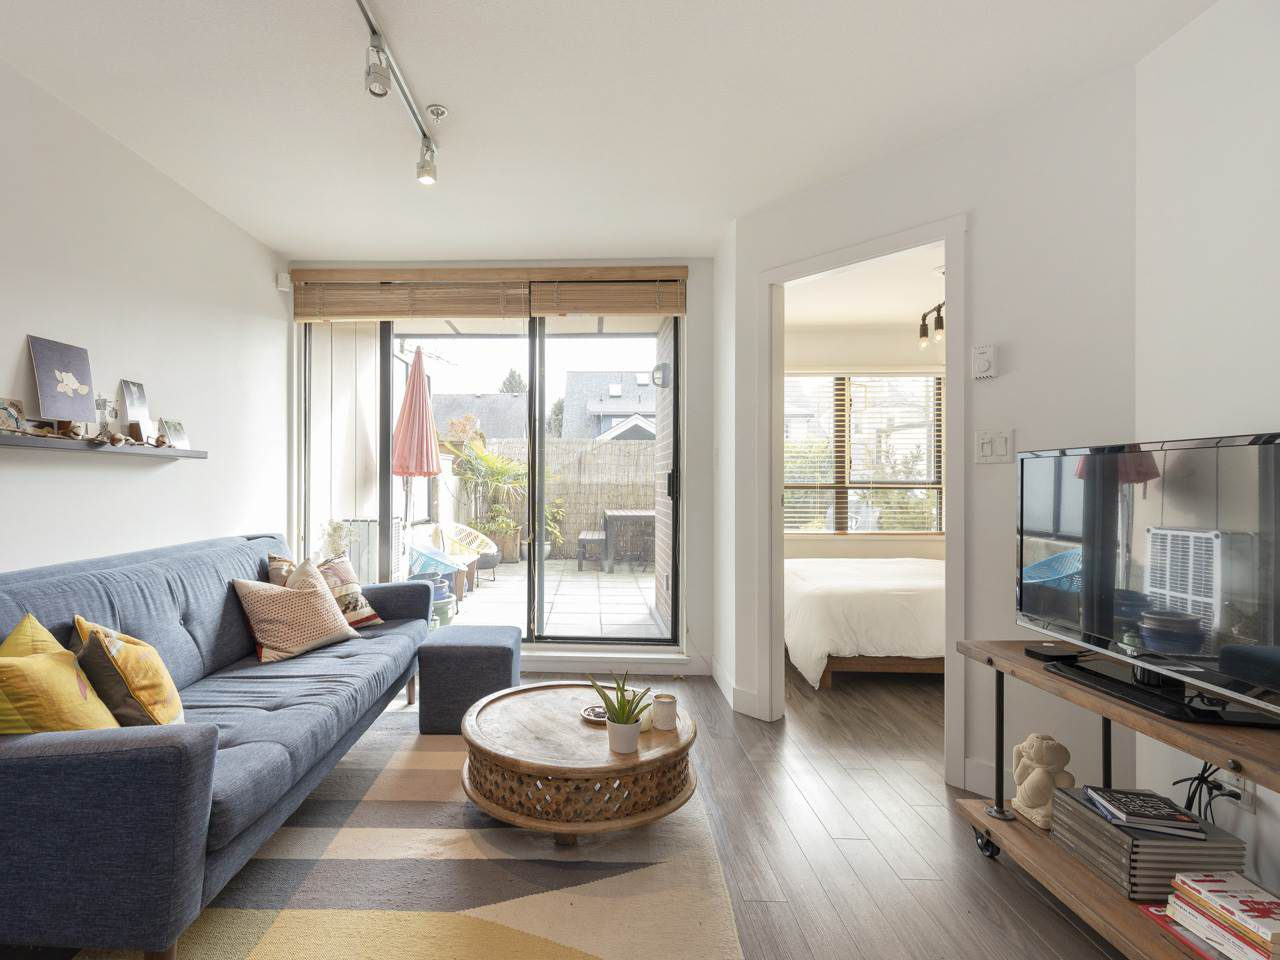 """Main Photo: 210 2150 E HASTINGS Street in Vancouver: Hastings Condo for sale in """"The View"""" (Vancouver East)  : MLS®# R2345358"""